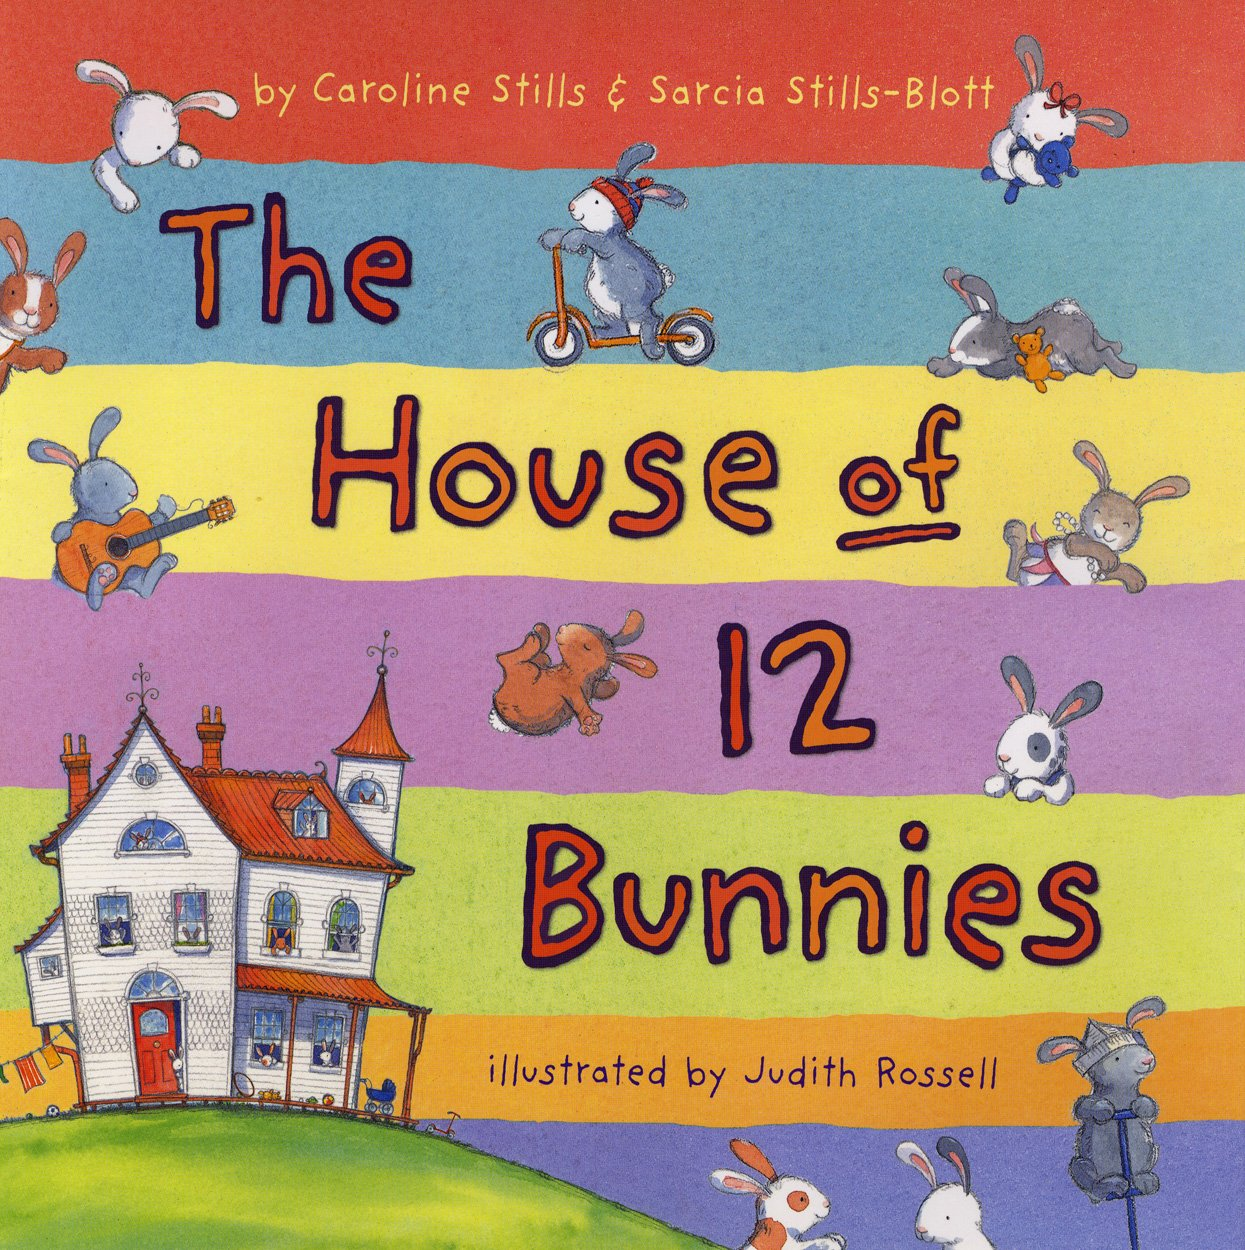 The House of 12 Bunnies: Caroline Stills, Sarcia Stills-Blott, Judith  Rossell: 9780823424221: Amazon.com: Books